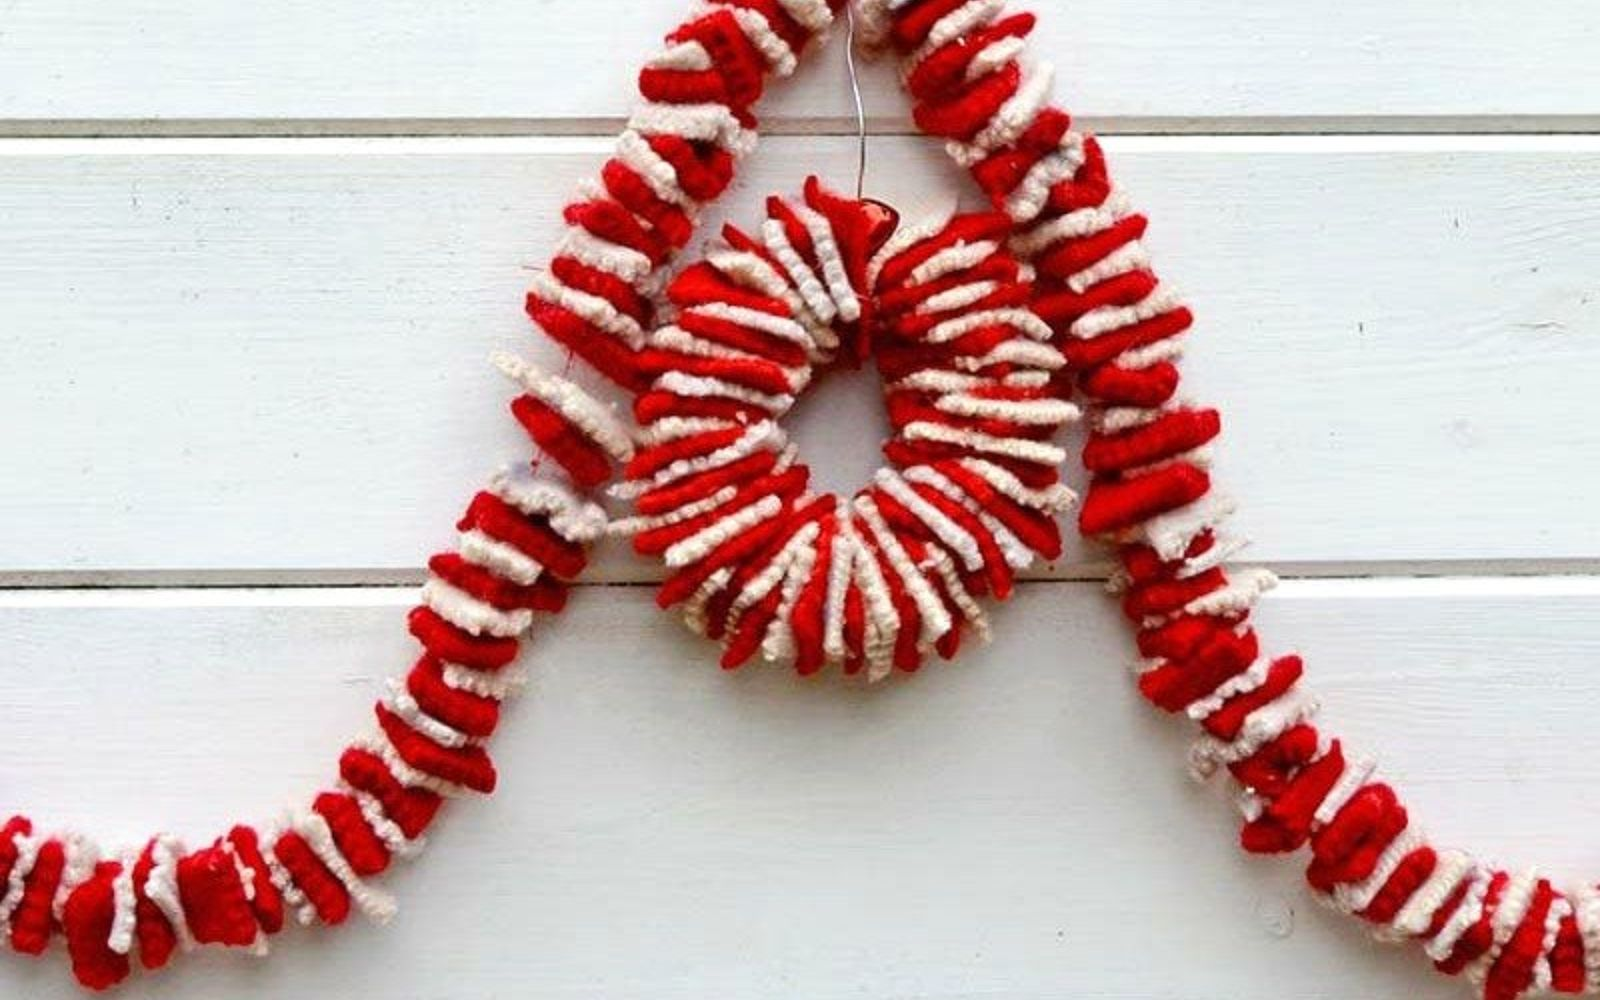 s 15 reasons not to trash your ugly worn out sweaters, crafts, repurposing upcycling, Cut up scraps and string them into a garland